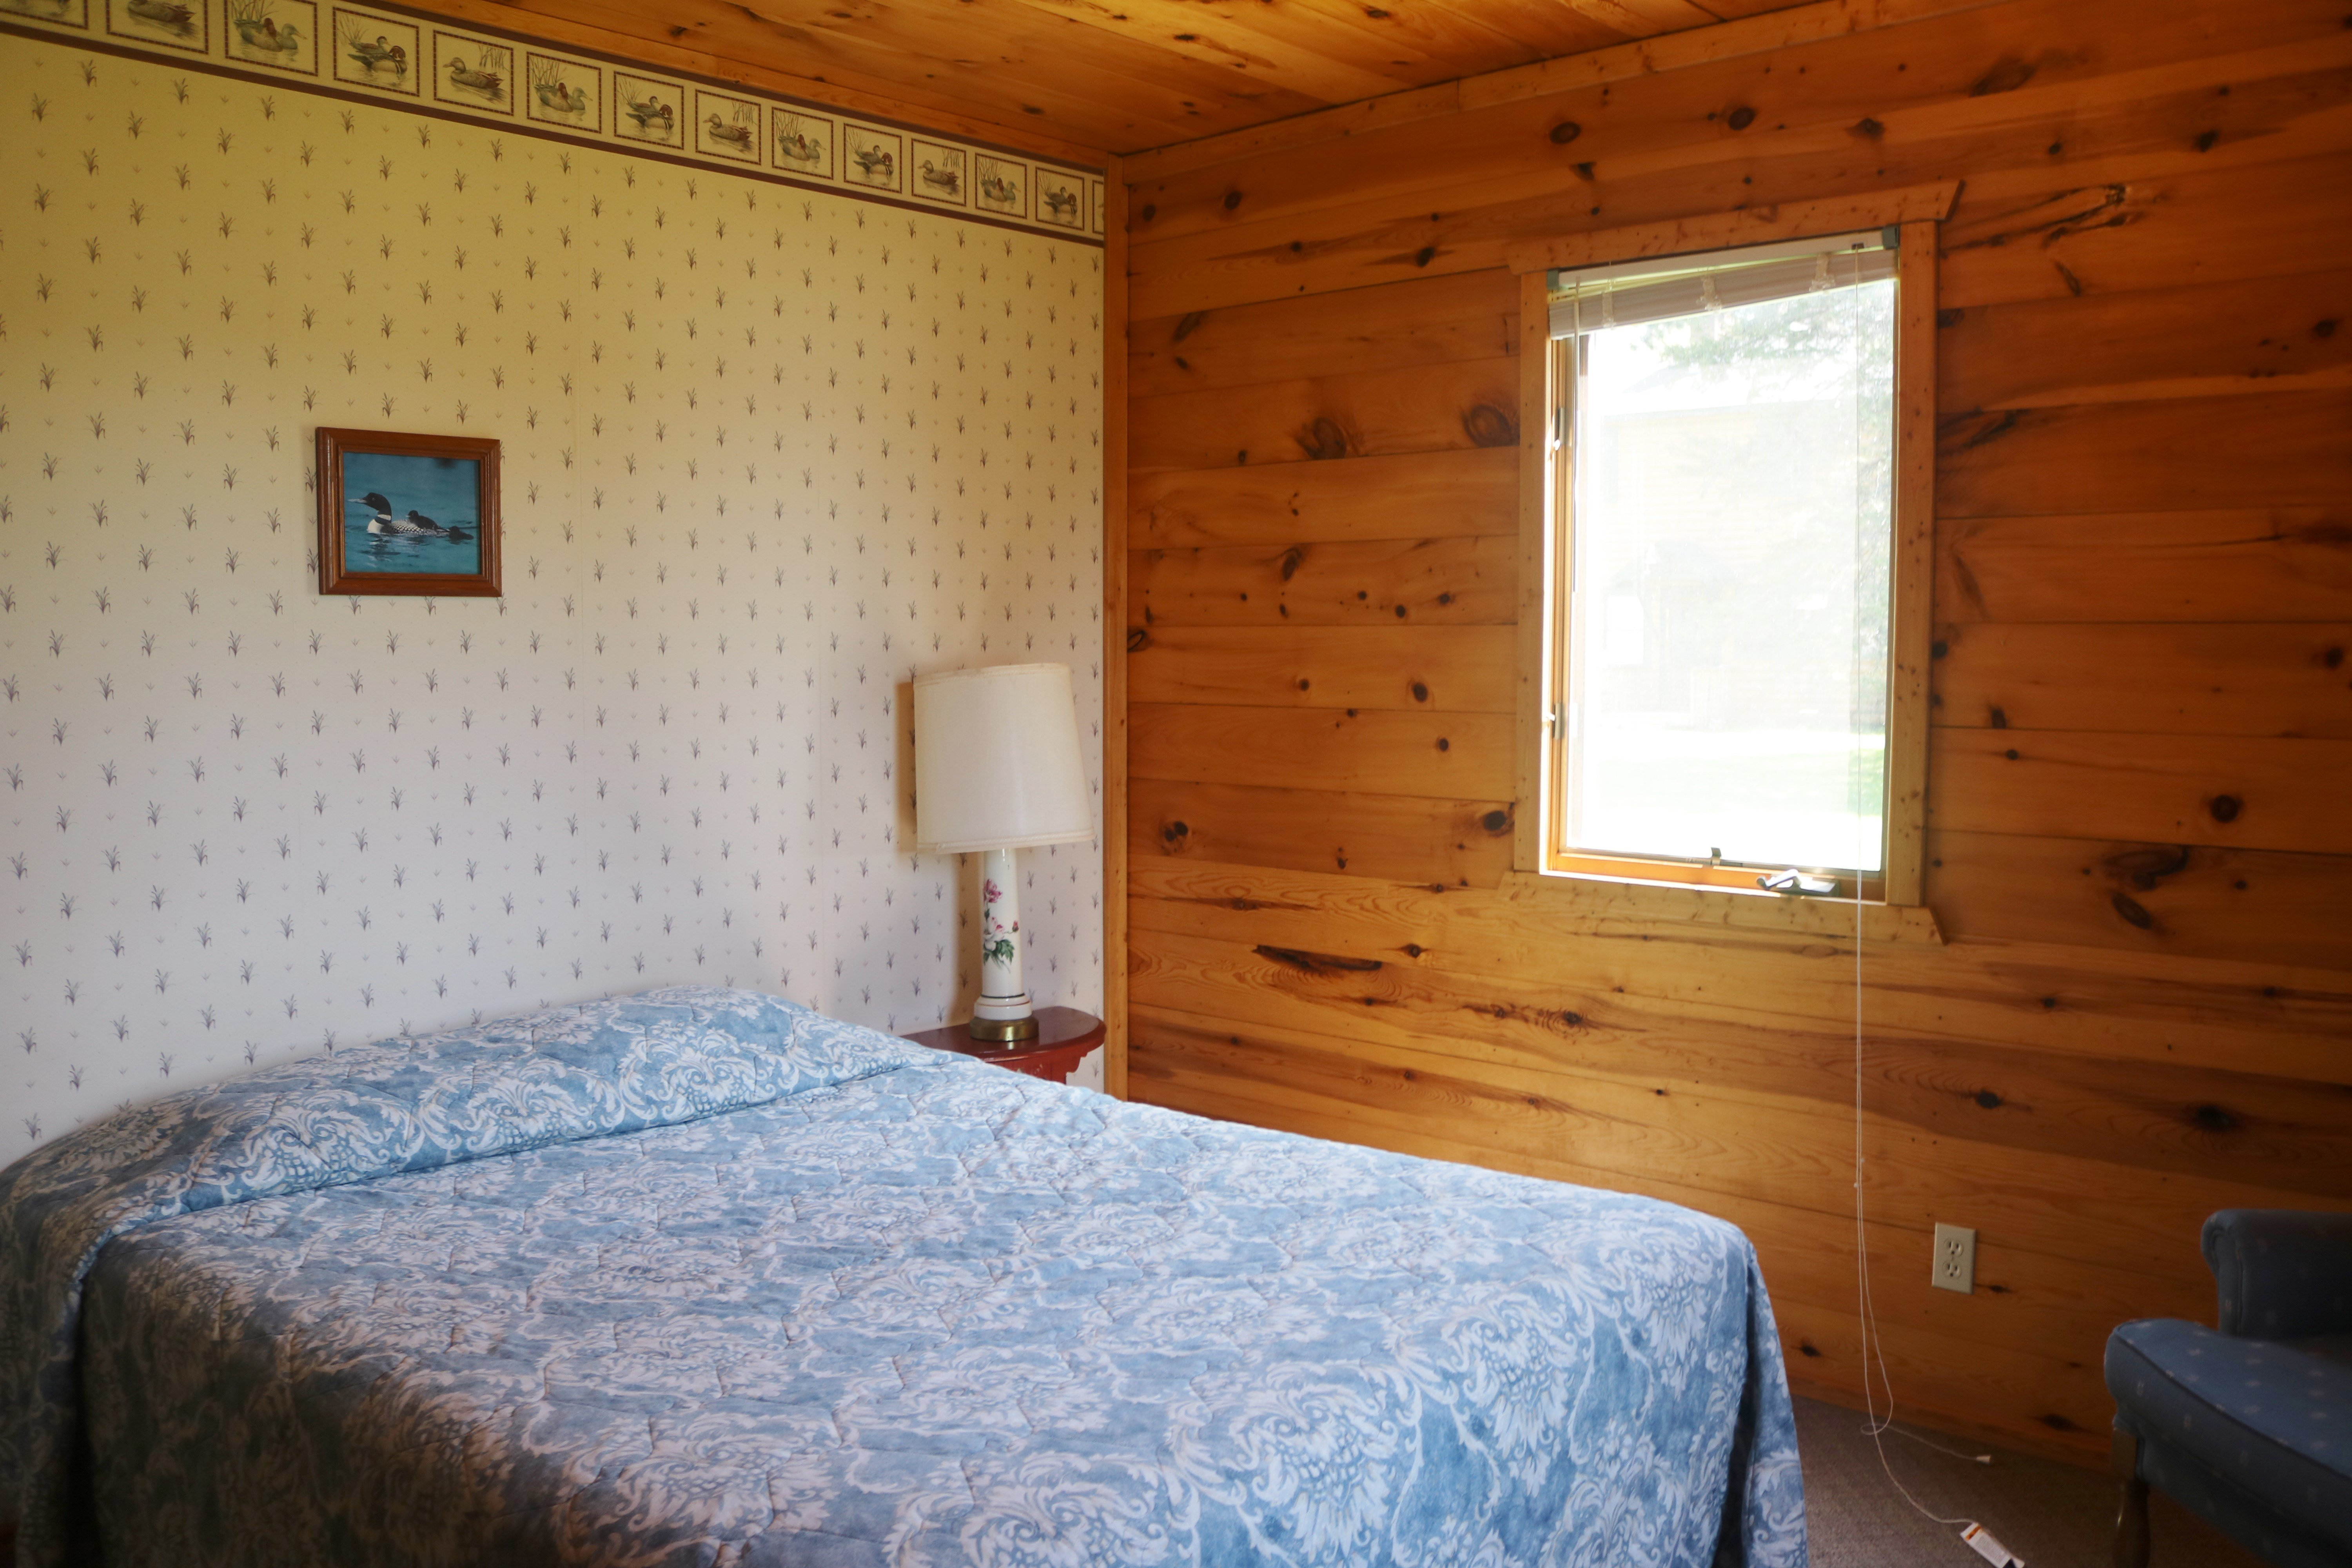 2 bedroom cabin resort and cabins photo gallery everett bay lodge 10012